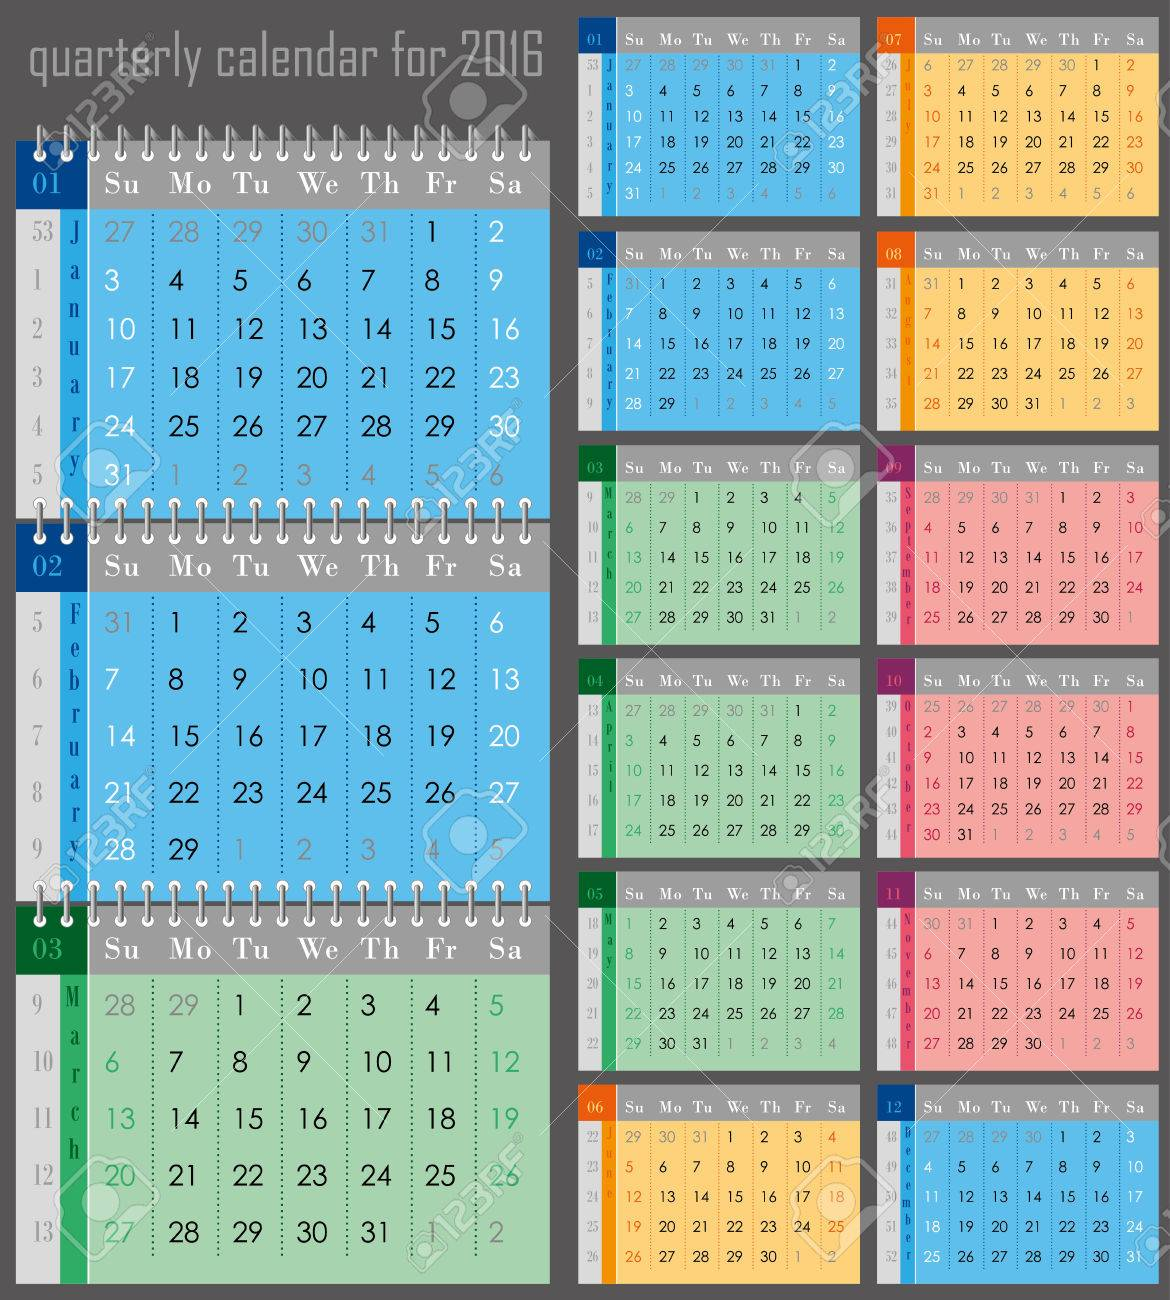 Quarterly Calendar For The 2016 Year For Print Royalty Free ...